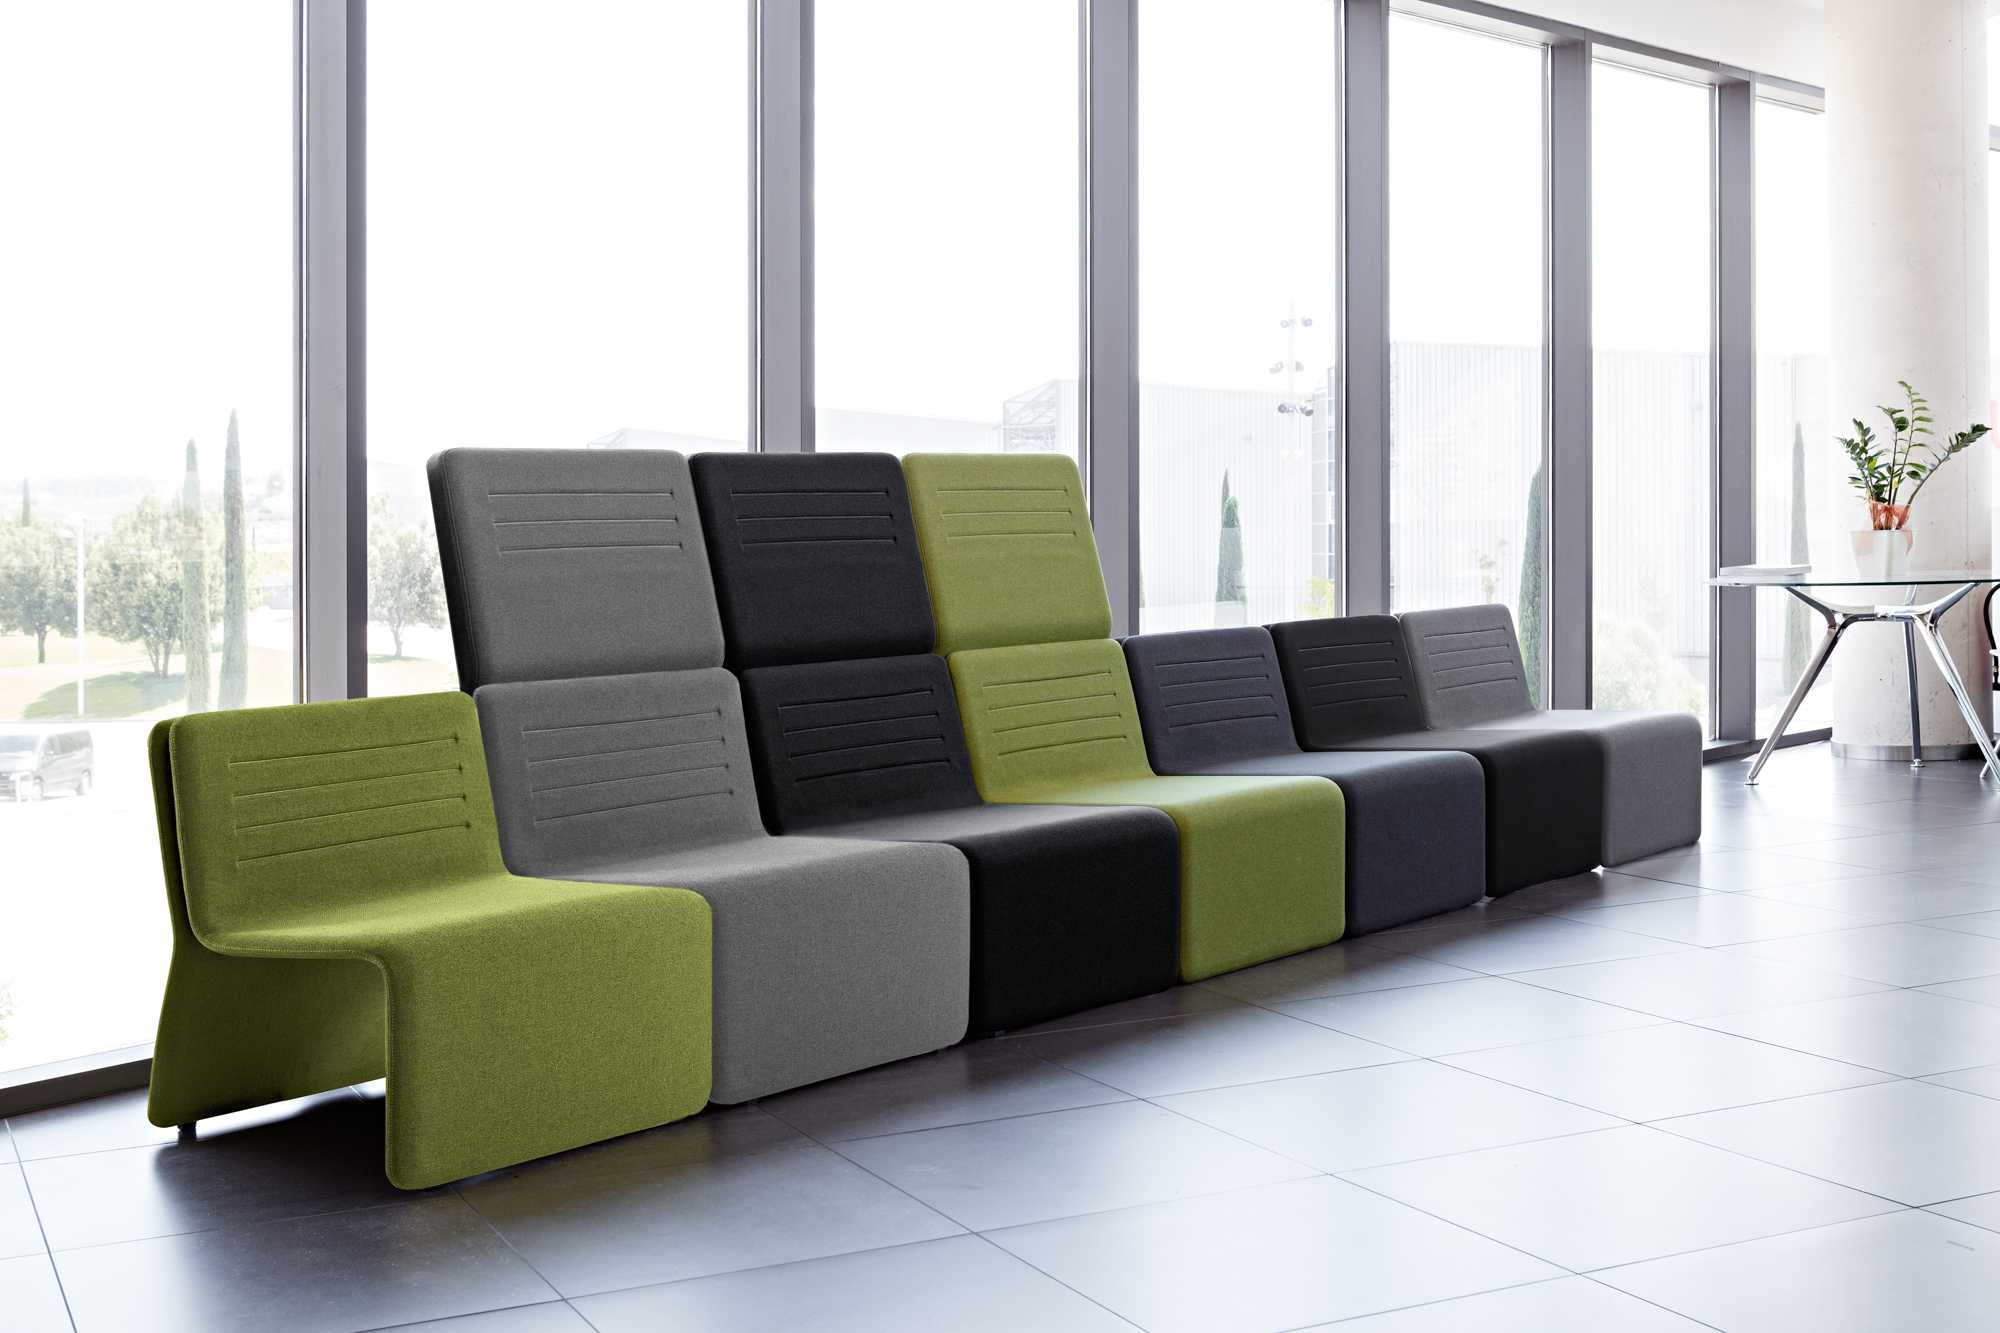 Seating SHAPE (24).jpg